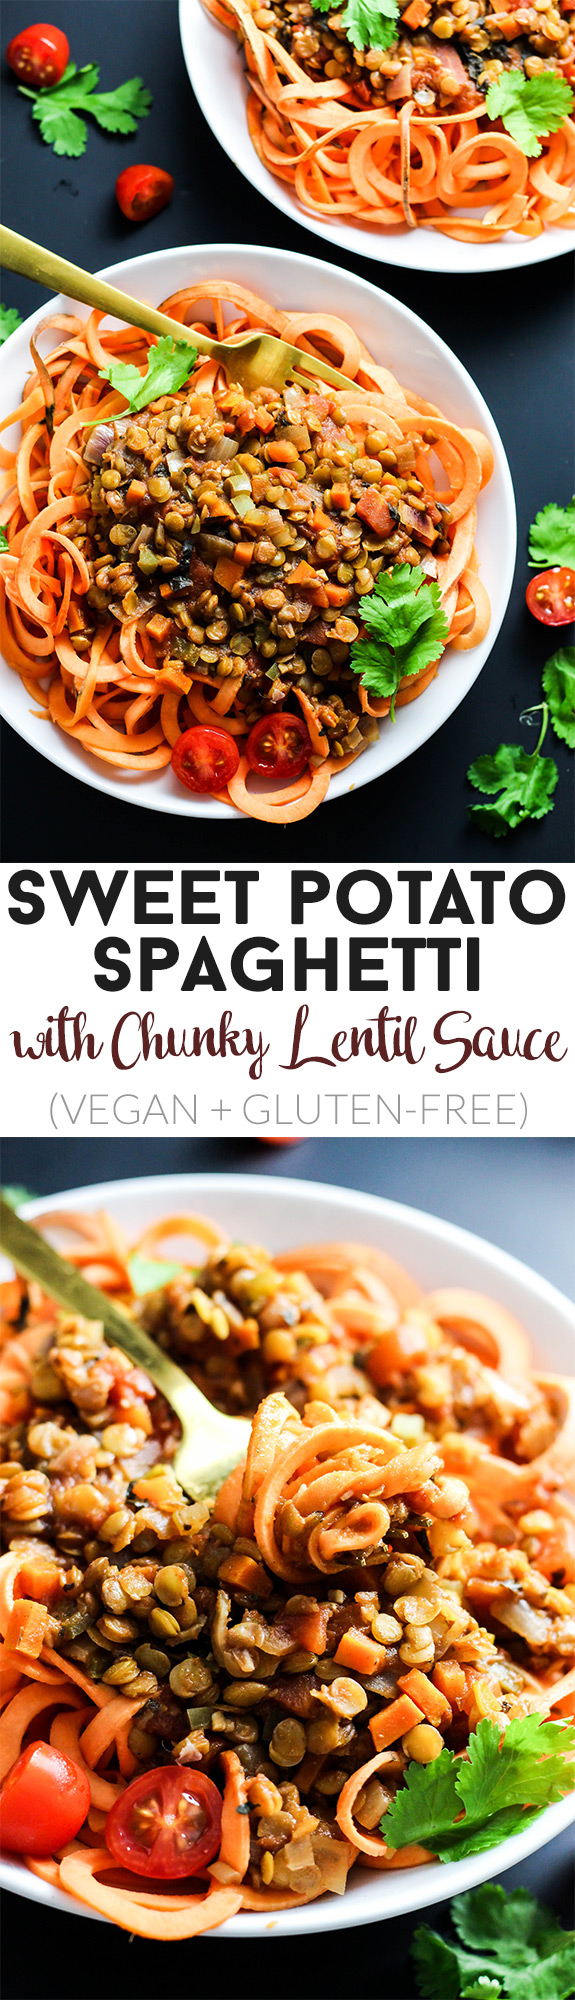 Enjoy this classic flavors of this Sweet Potato Spaghetti with Chunky Lentil Sauce! This vegan & gluten-free meal is comforting and filling, yet healthy.